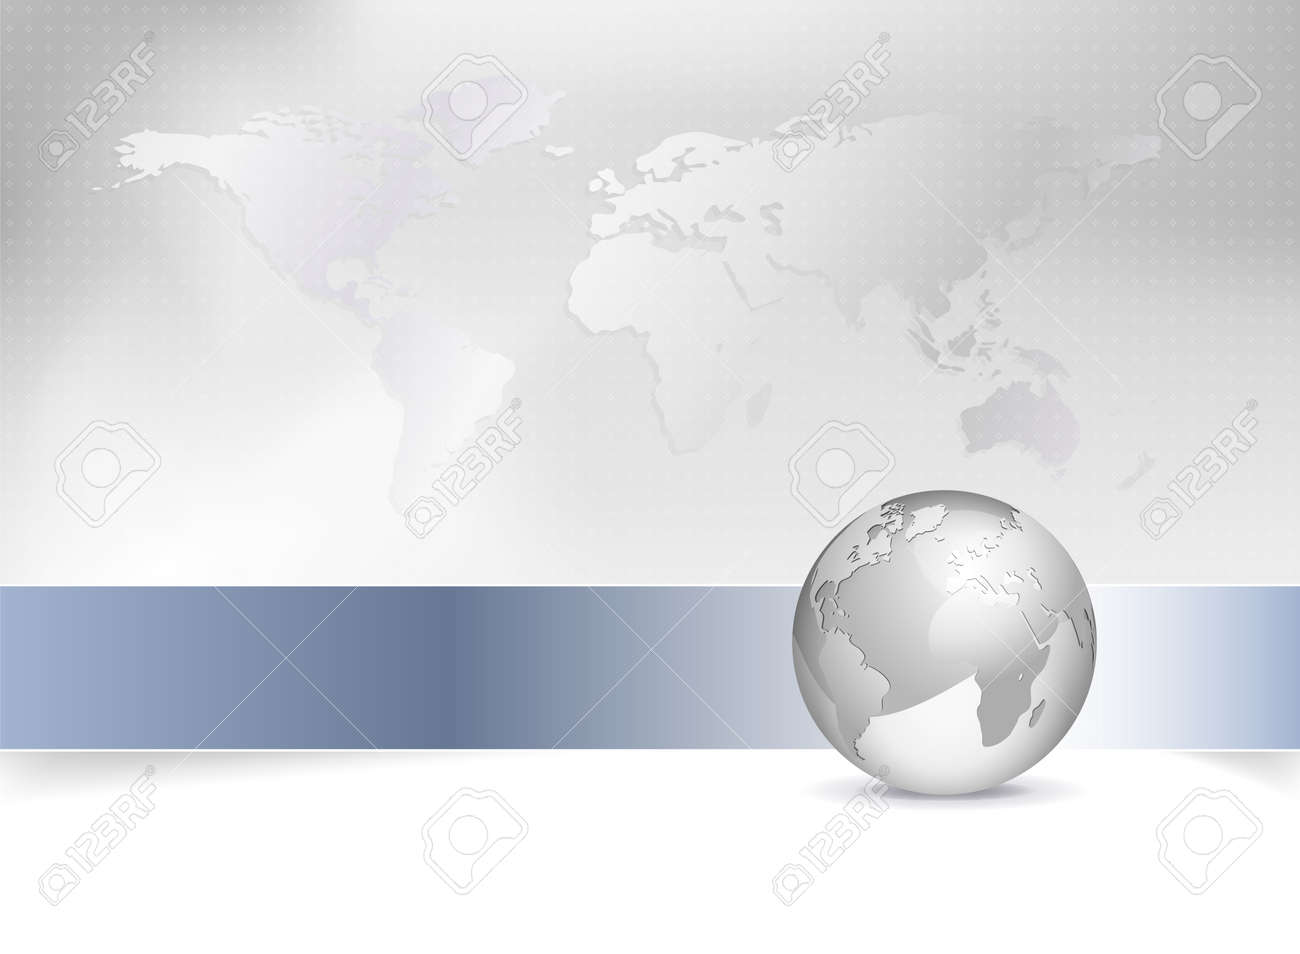 Business map world map globe abstract grey background design business map world map globe abstract grey background design with blue banner stock gumiabroncs Images